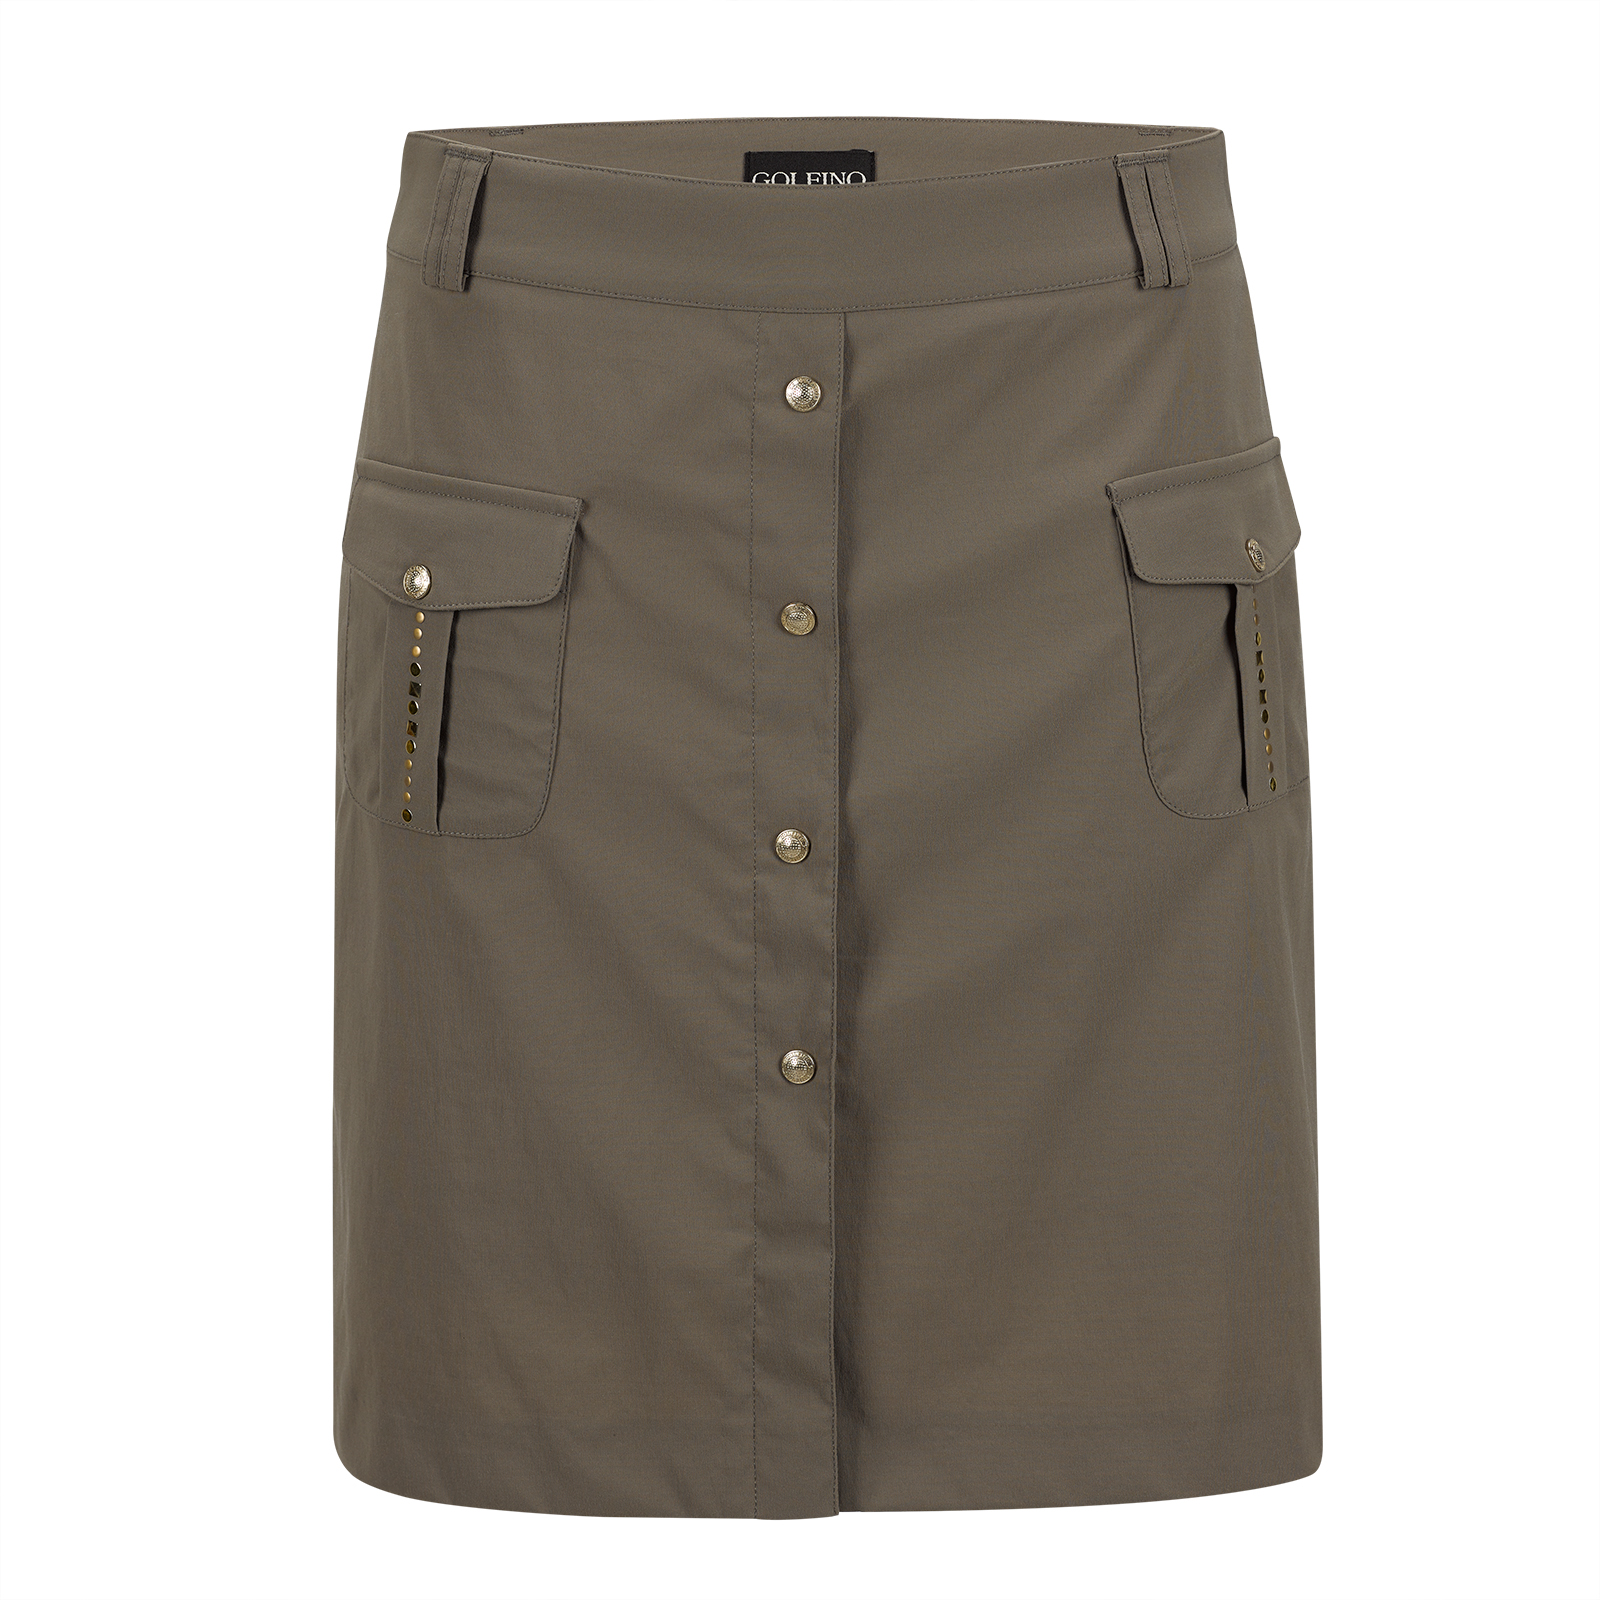 Damen Stretch-Golfskort mit goldfarbenen Metalldetails und Anti-UV Funktion